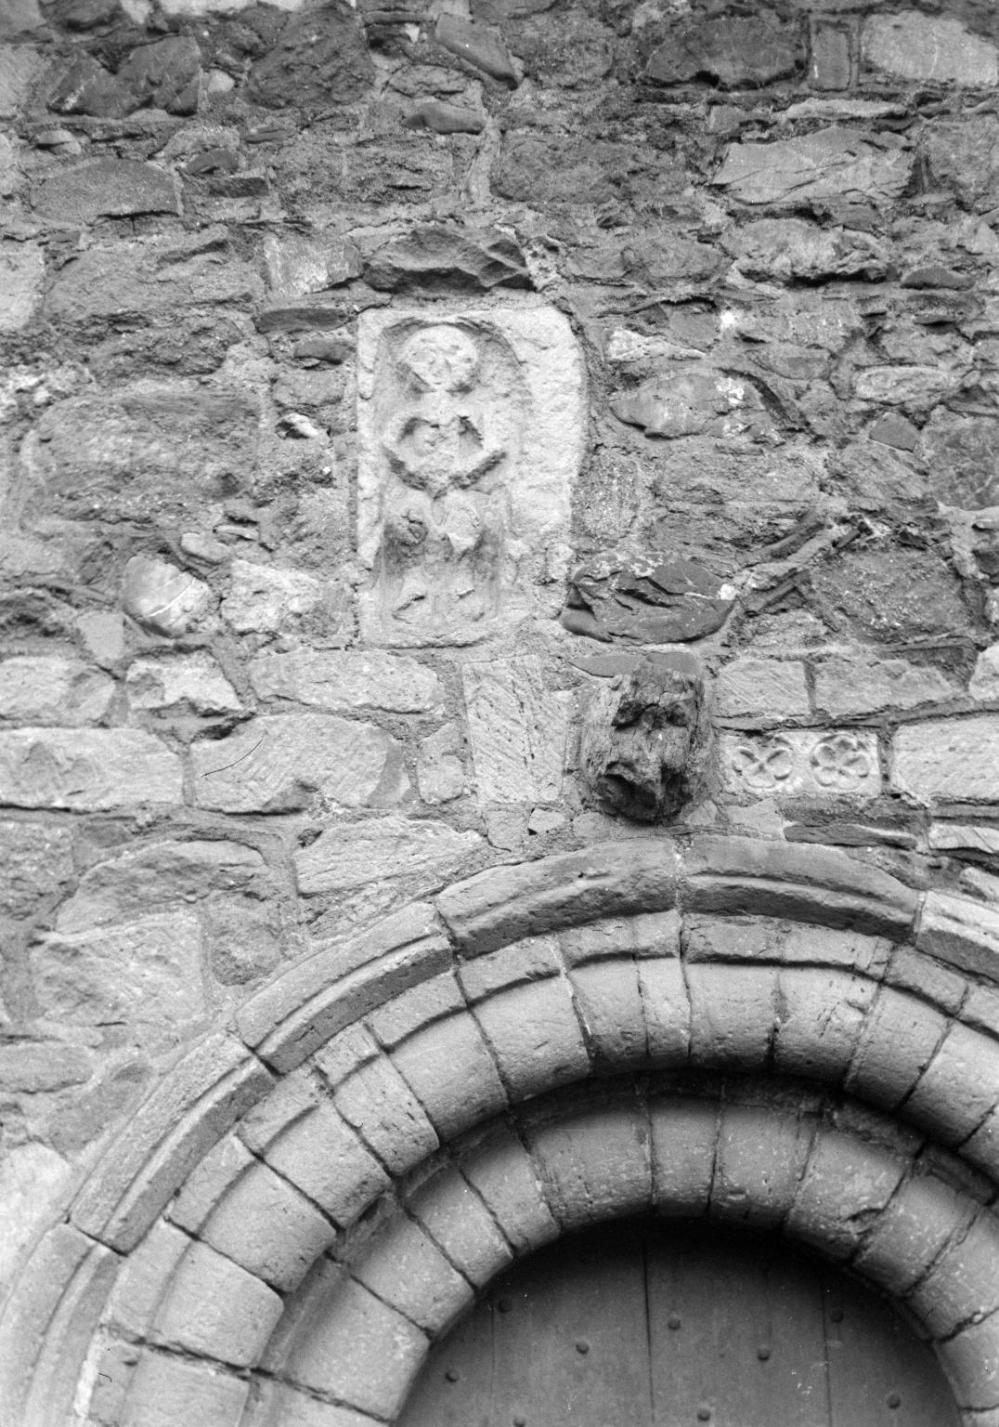 Photograph of the Sheela na gig, Church Stretton, Shropshire [c.1930s-1980s] by John Piper 1903-1992